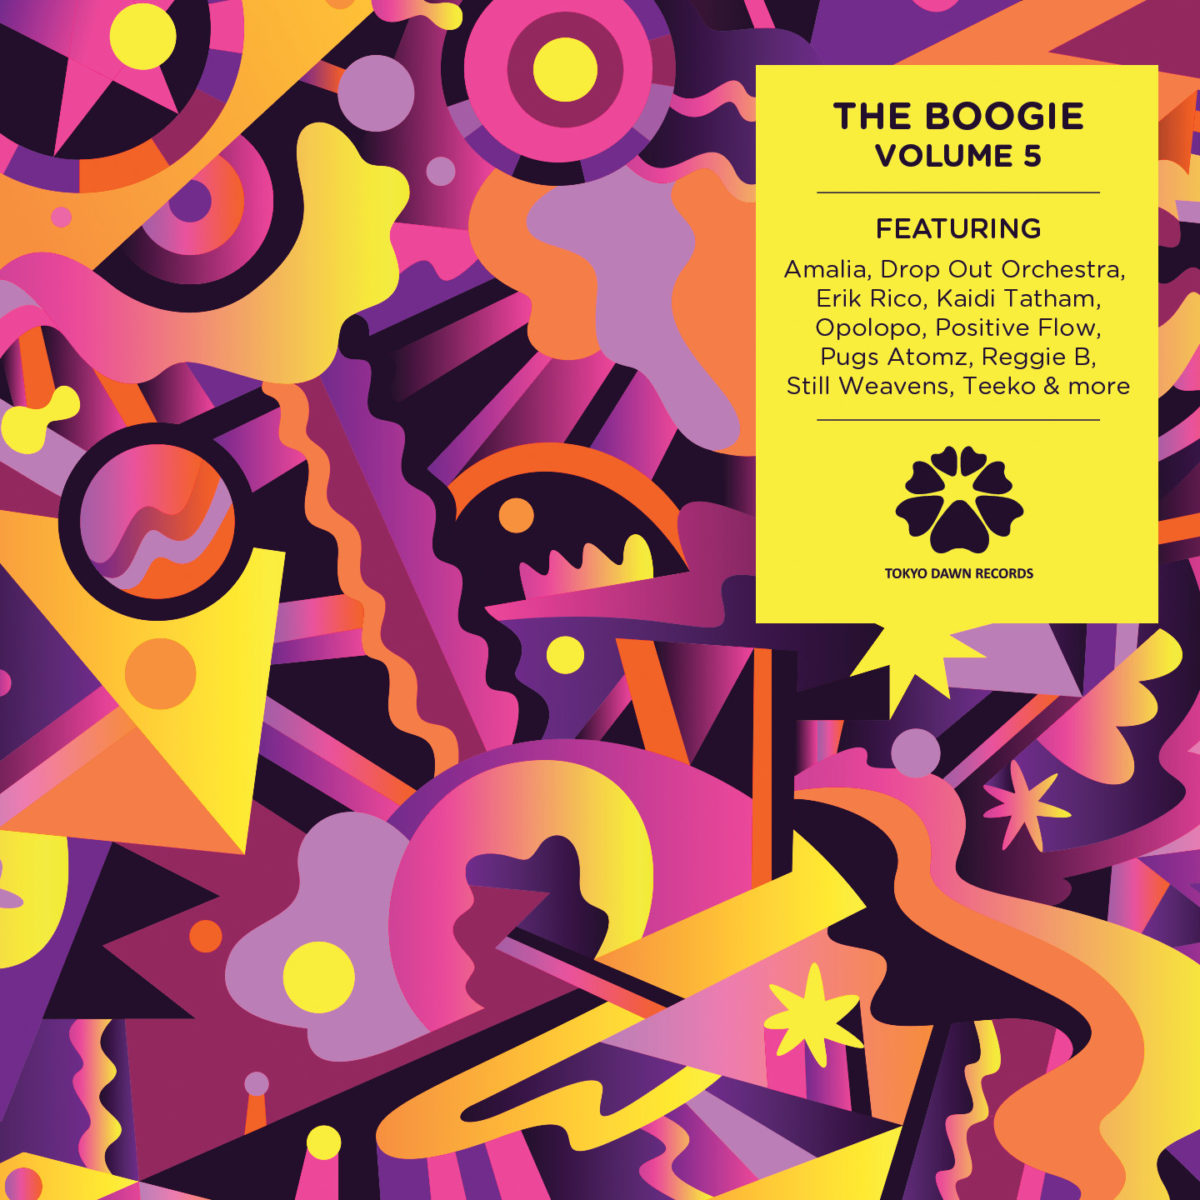 the boogie 5